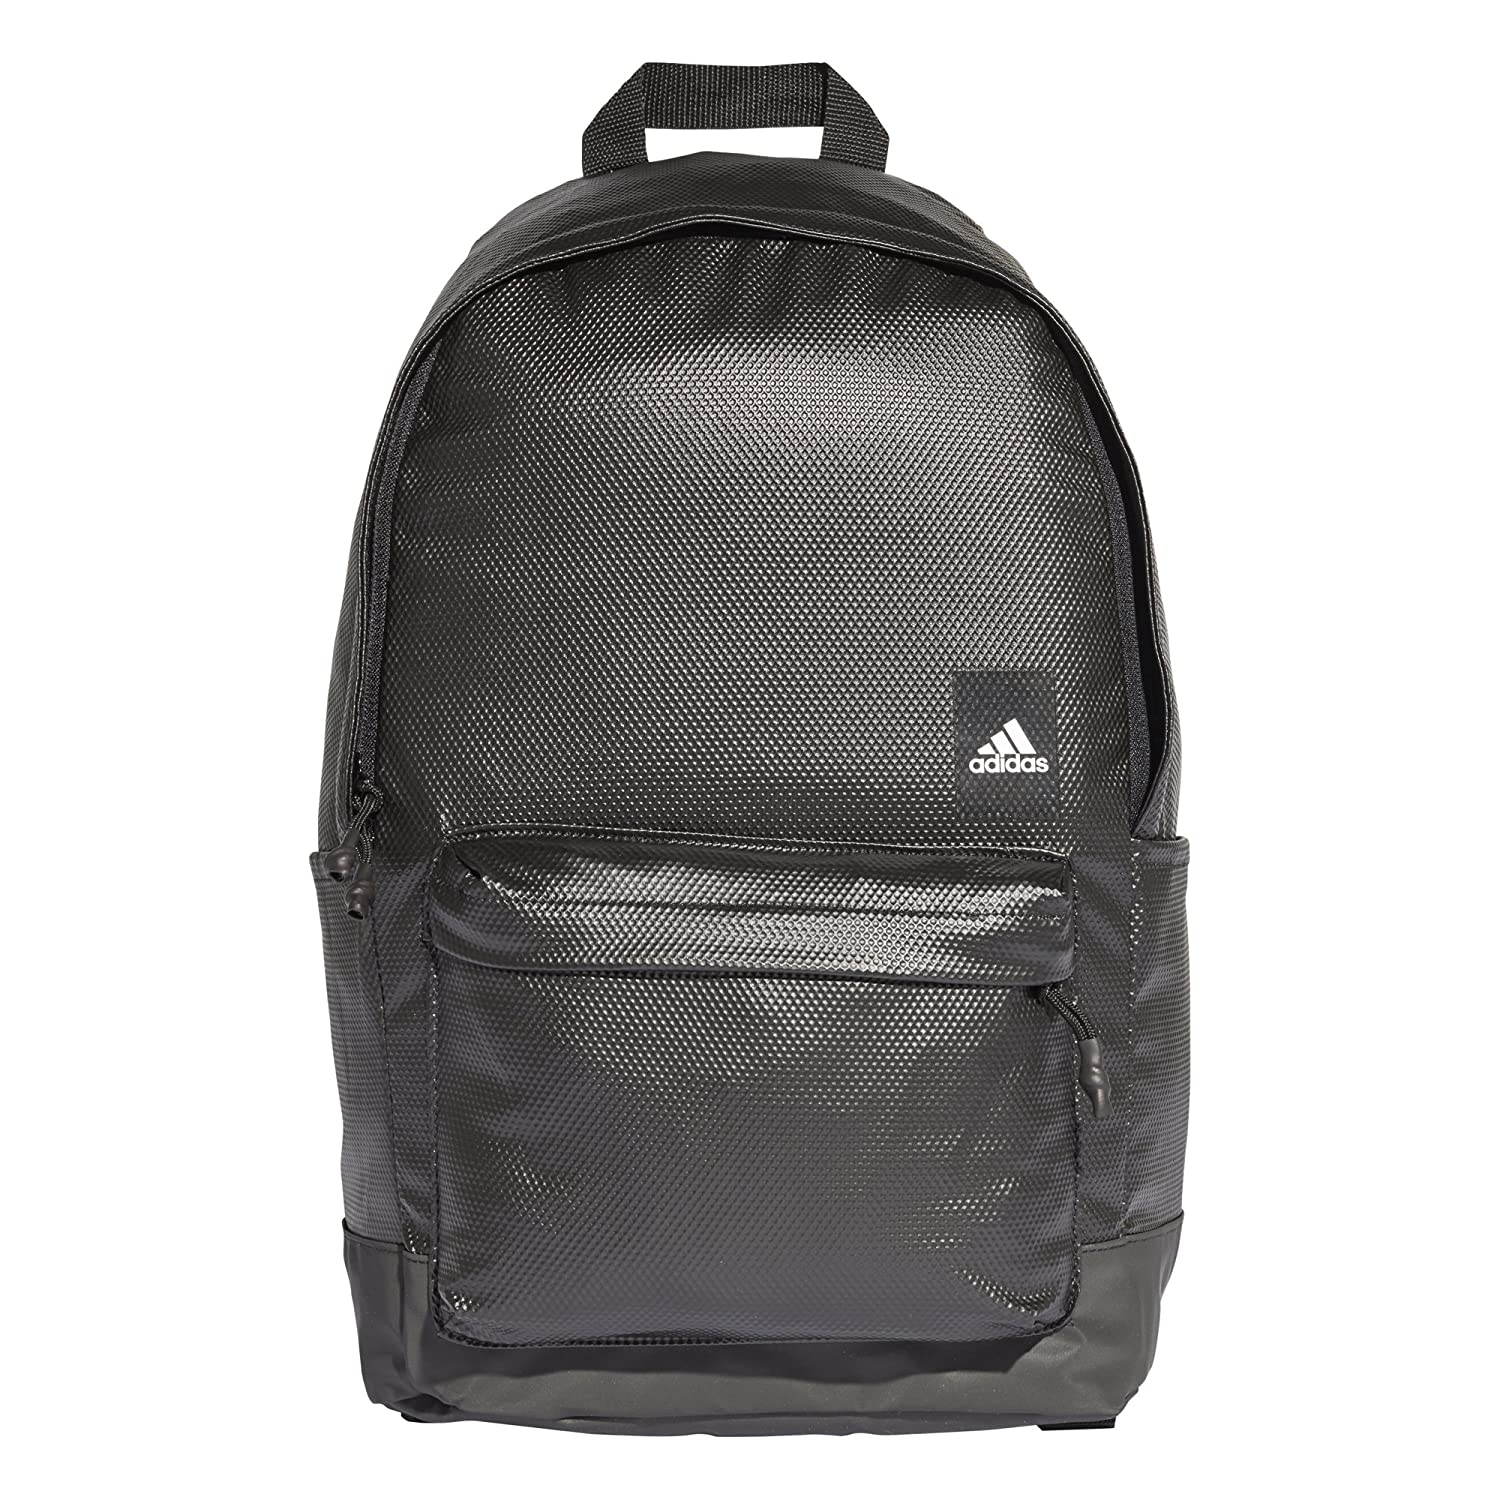 c64de20f7e adidas Water-Repellant Classic Backpack, Black/Black/White, Medium:  Amazon.ca: Sports & Outdoors